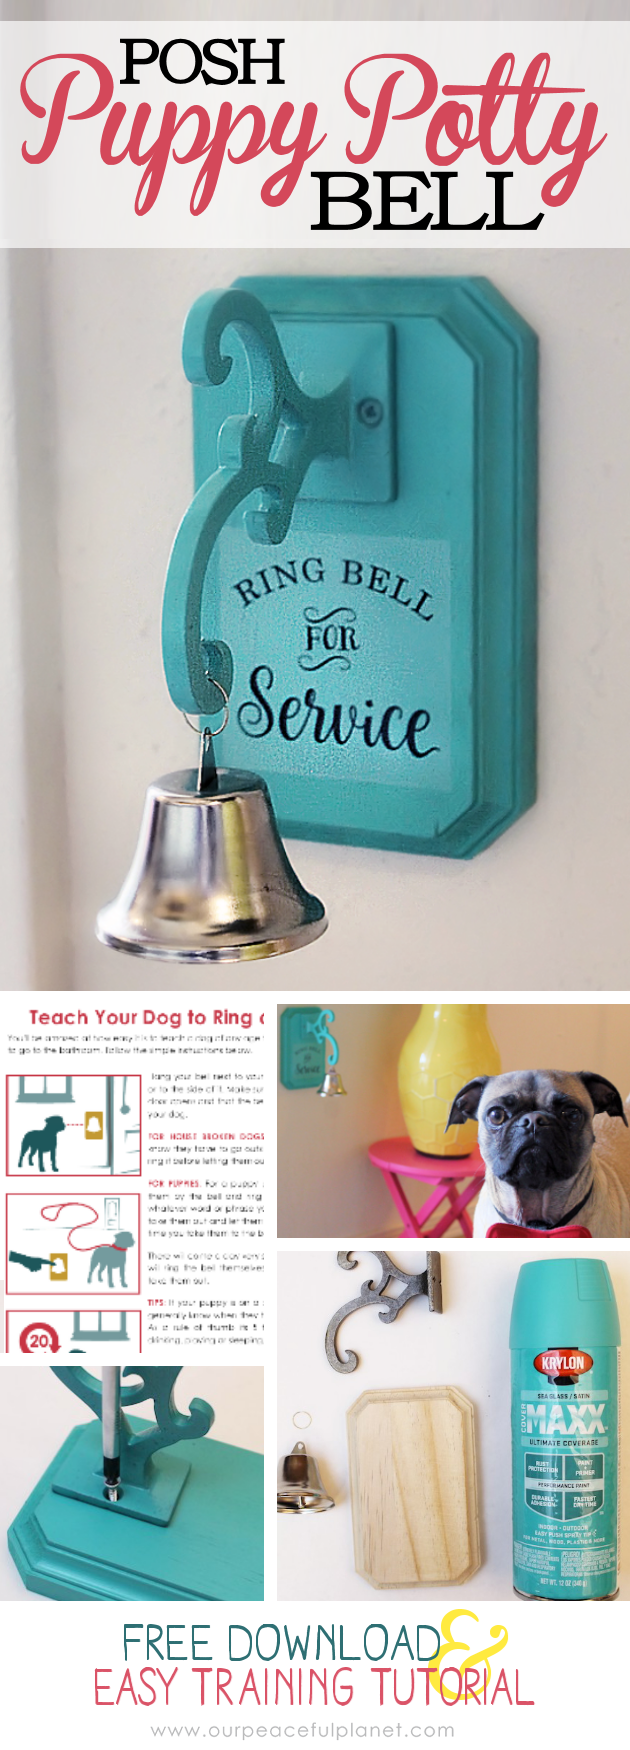 How To Potty Train A Dog With A Bell